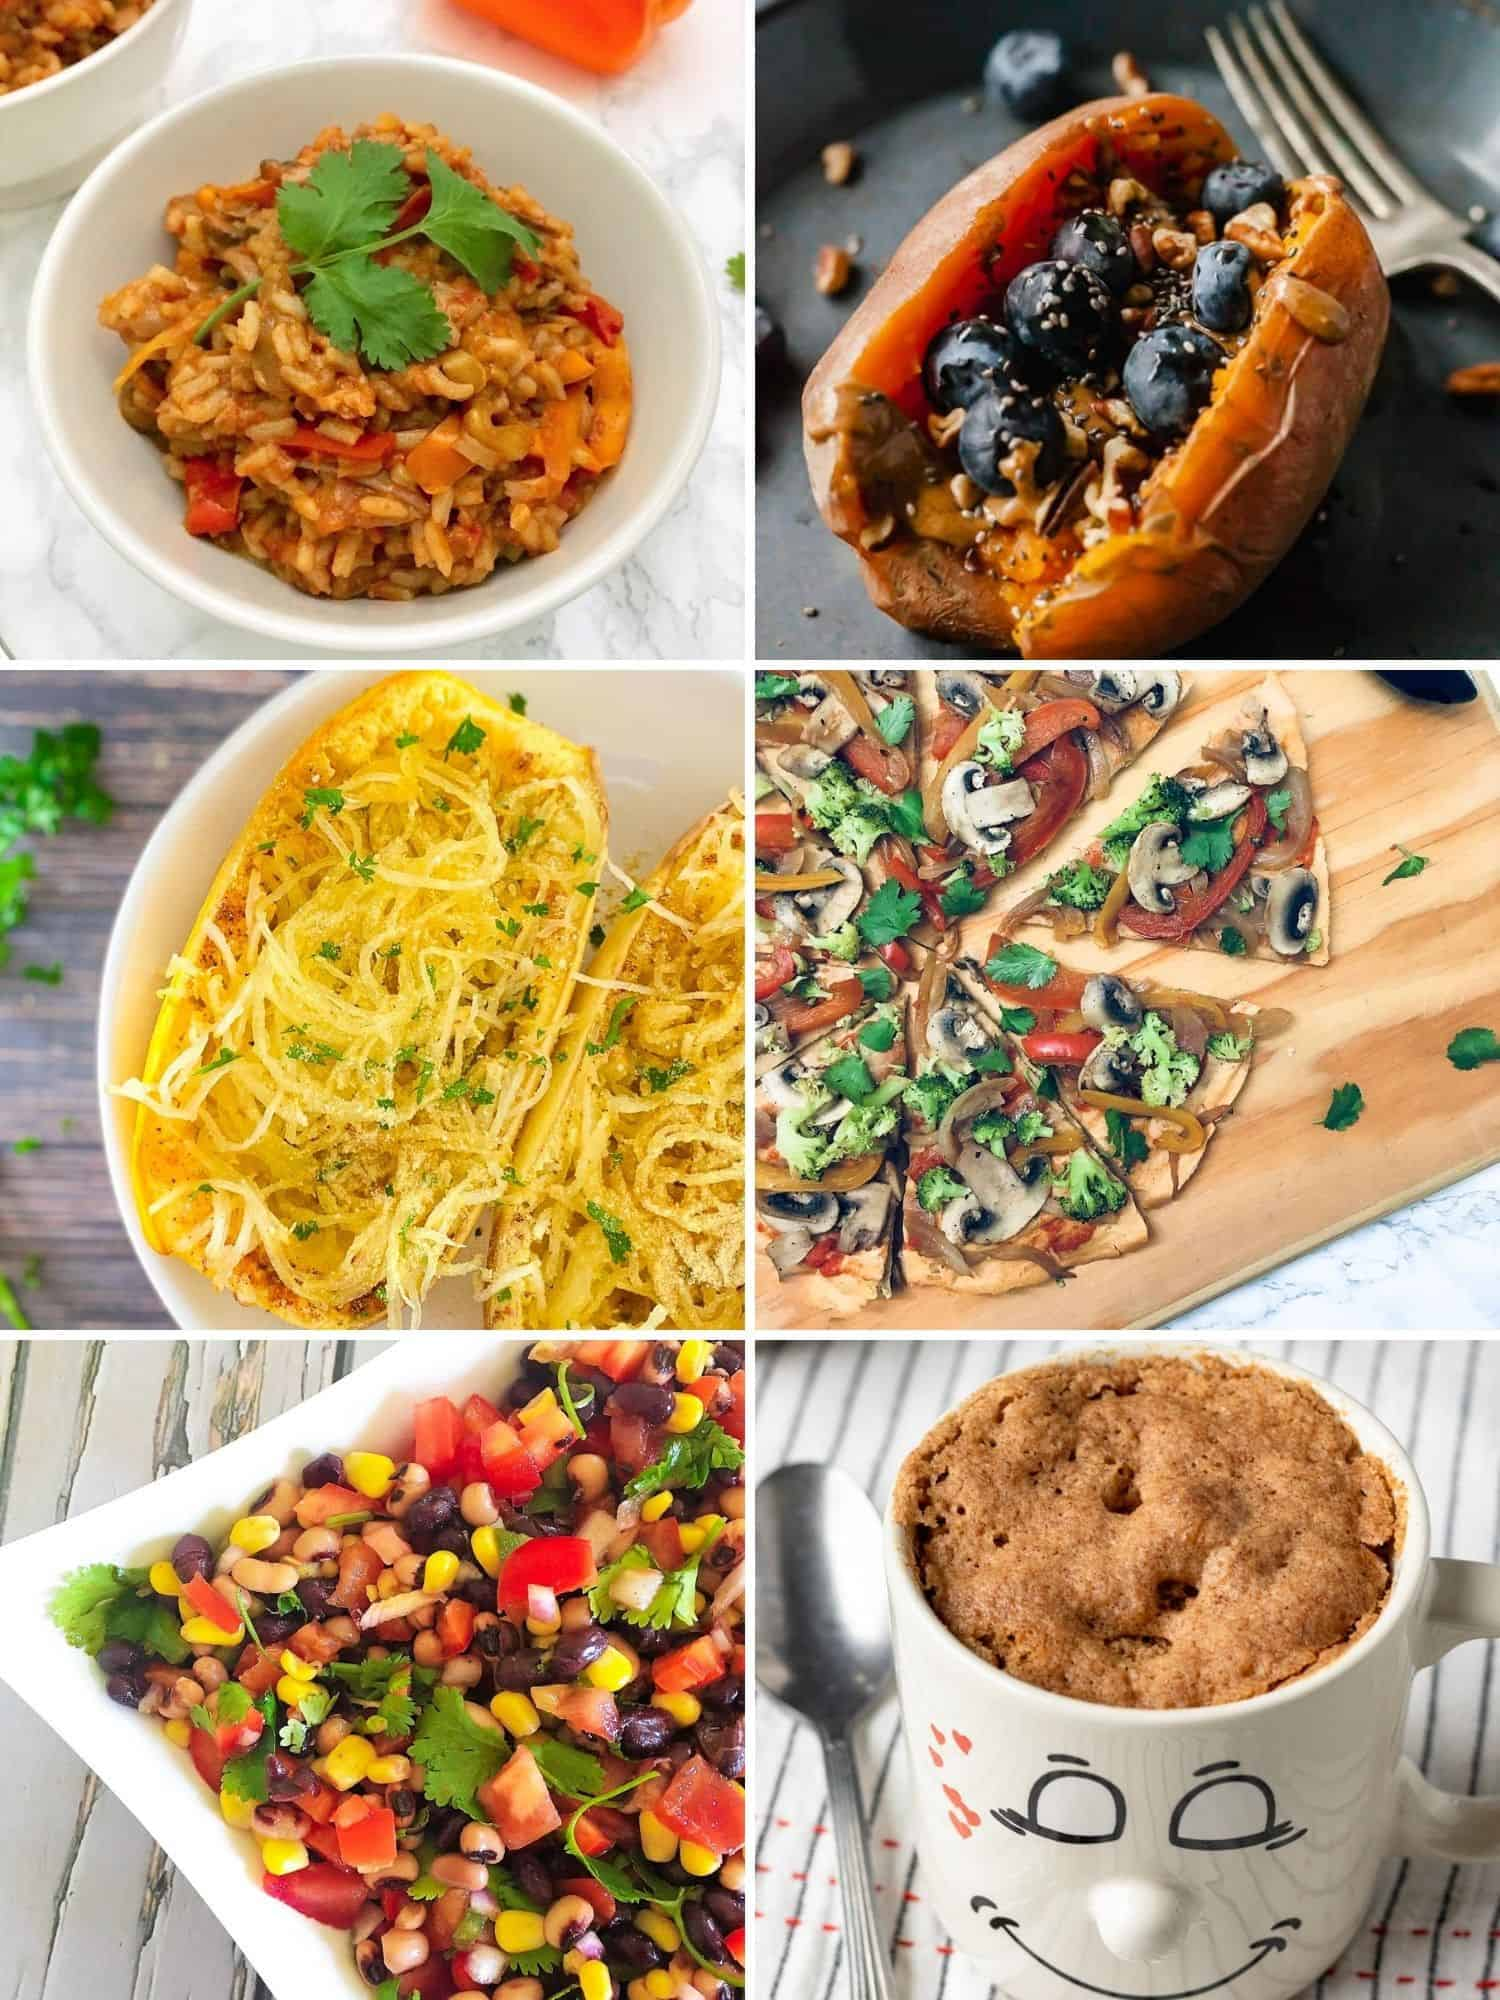 Collage of 6 images displaying easy to make vegan recipes.